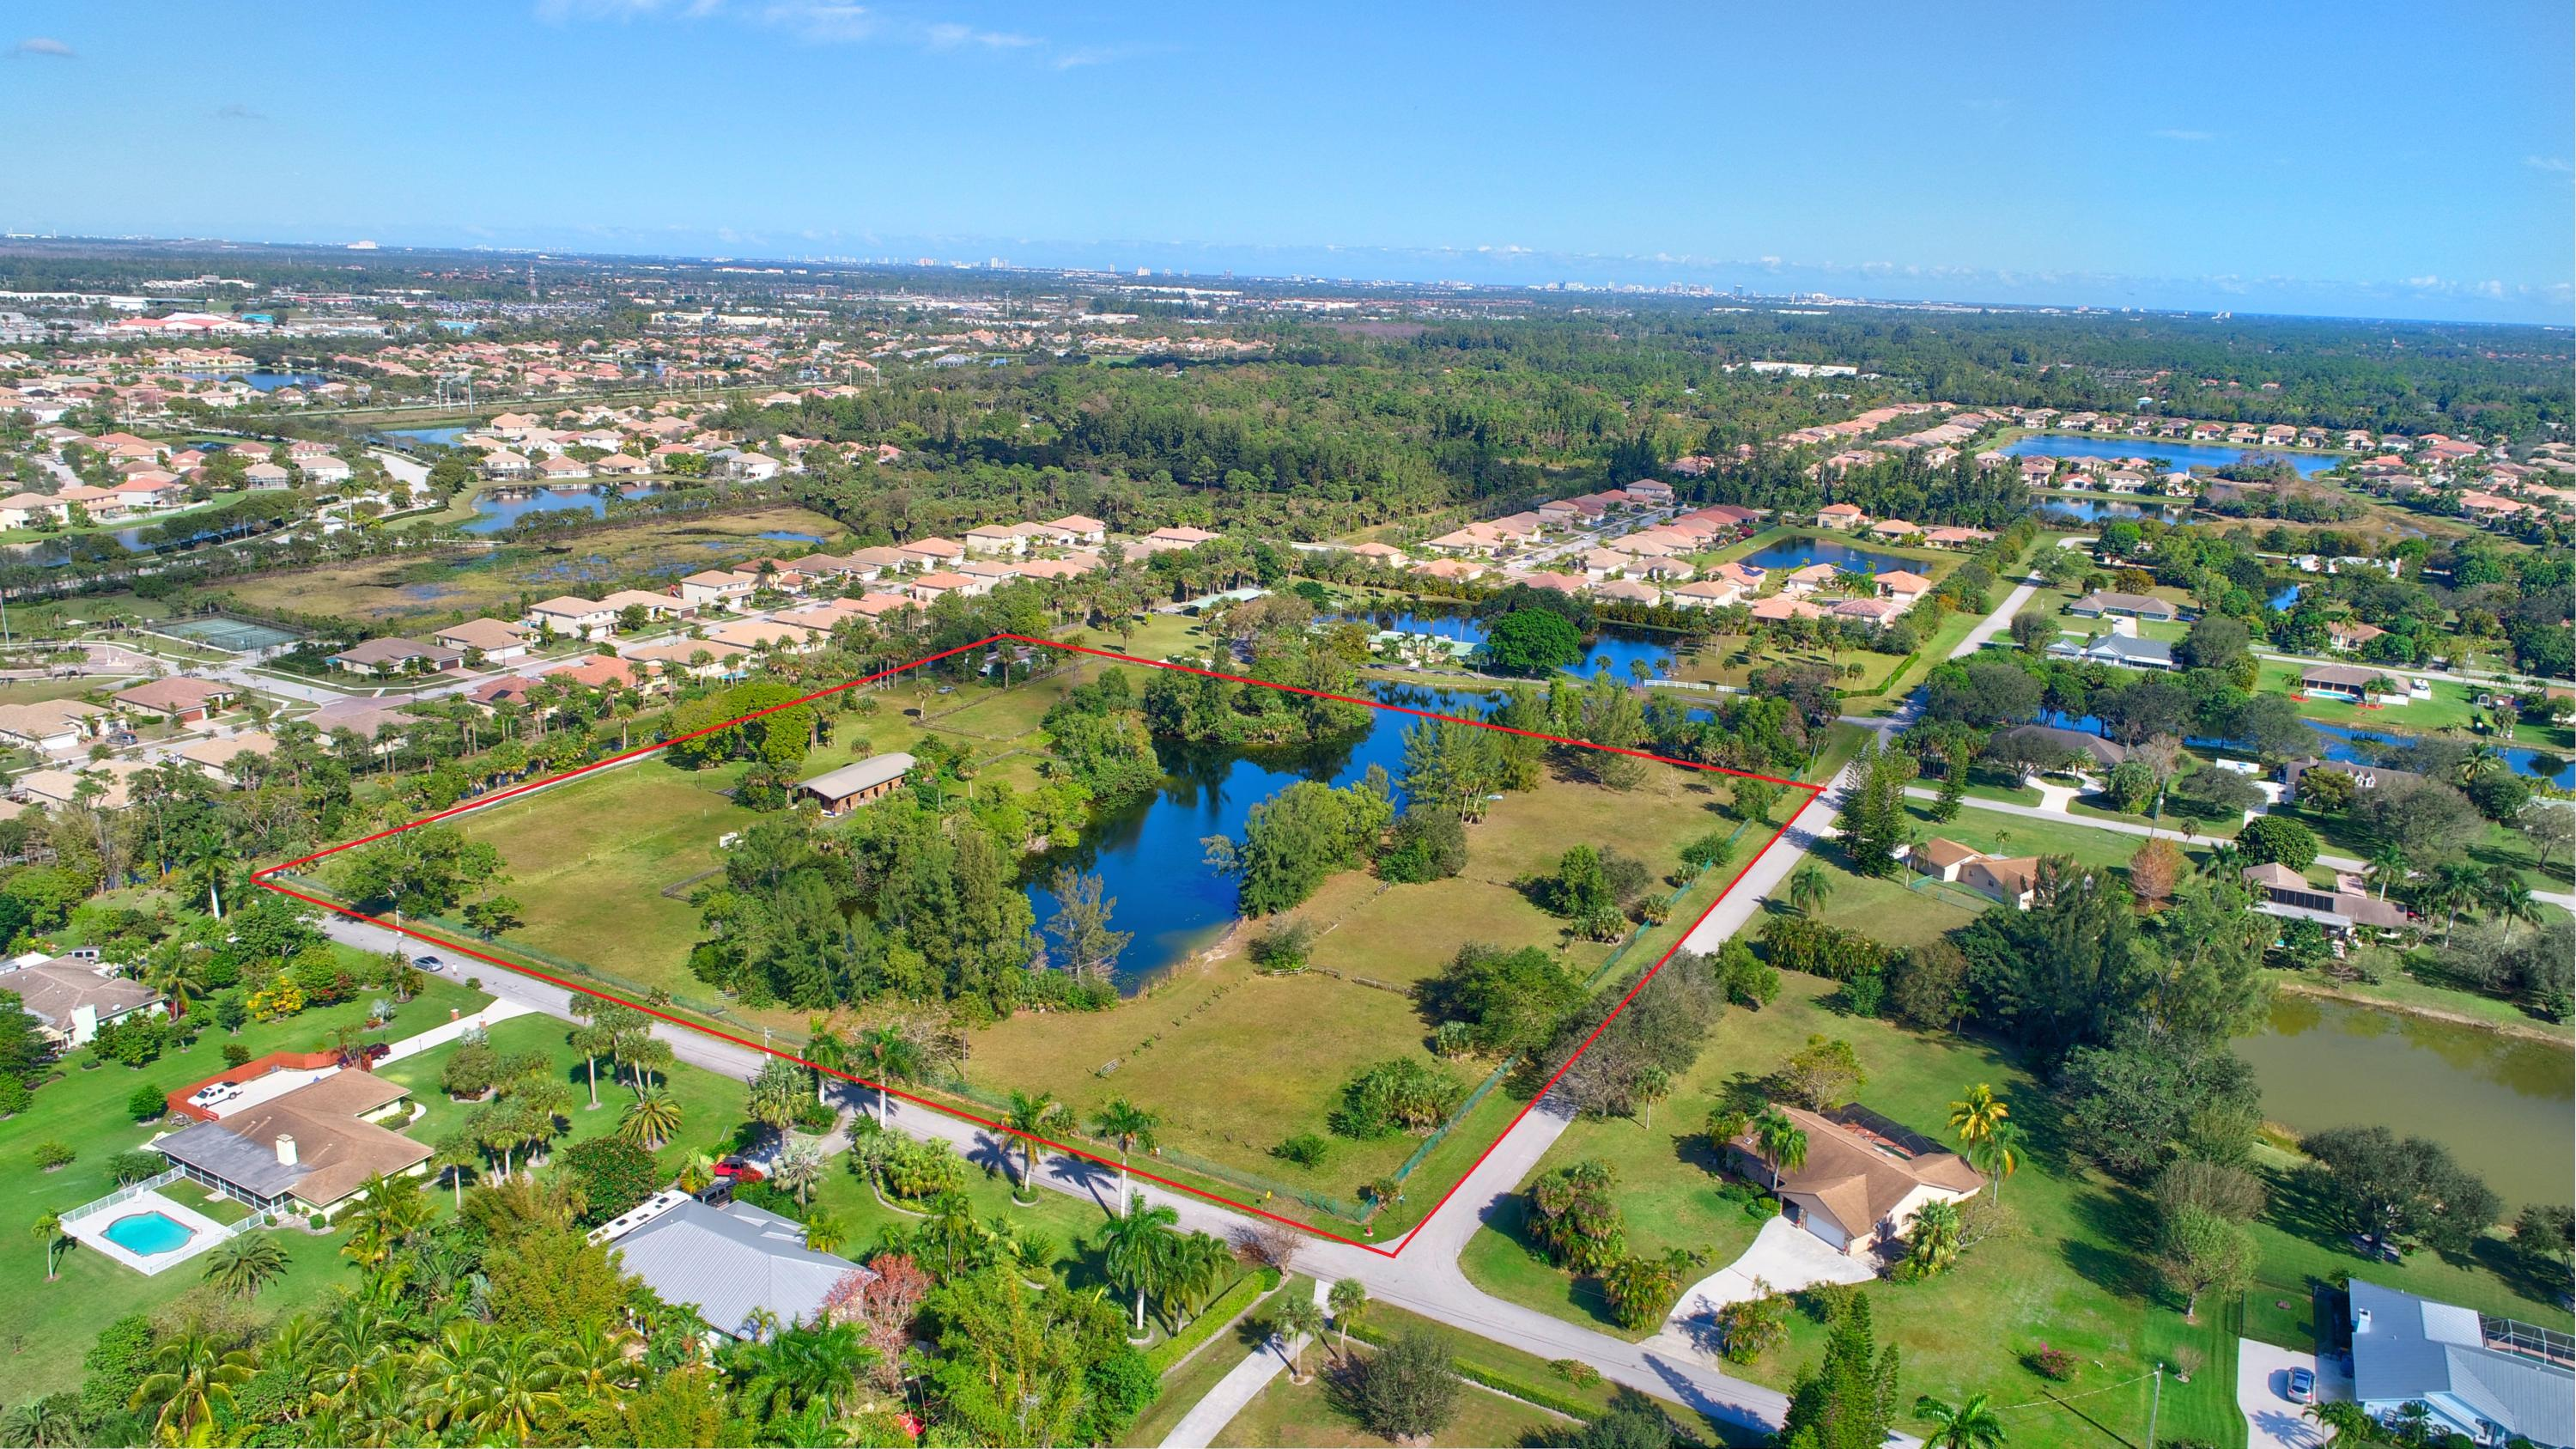 575 Whippoorwill Trail West Palm Beach, FL 33411 small photo 3